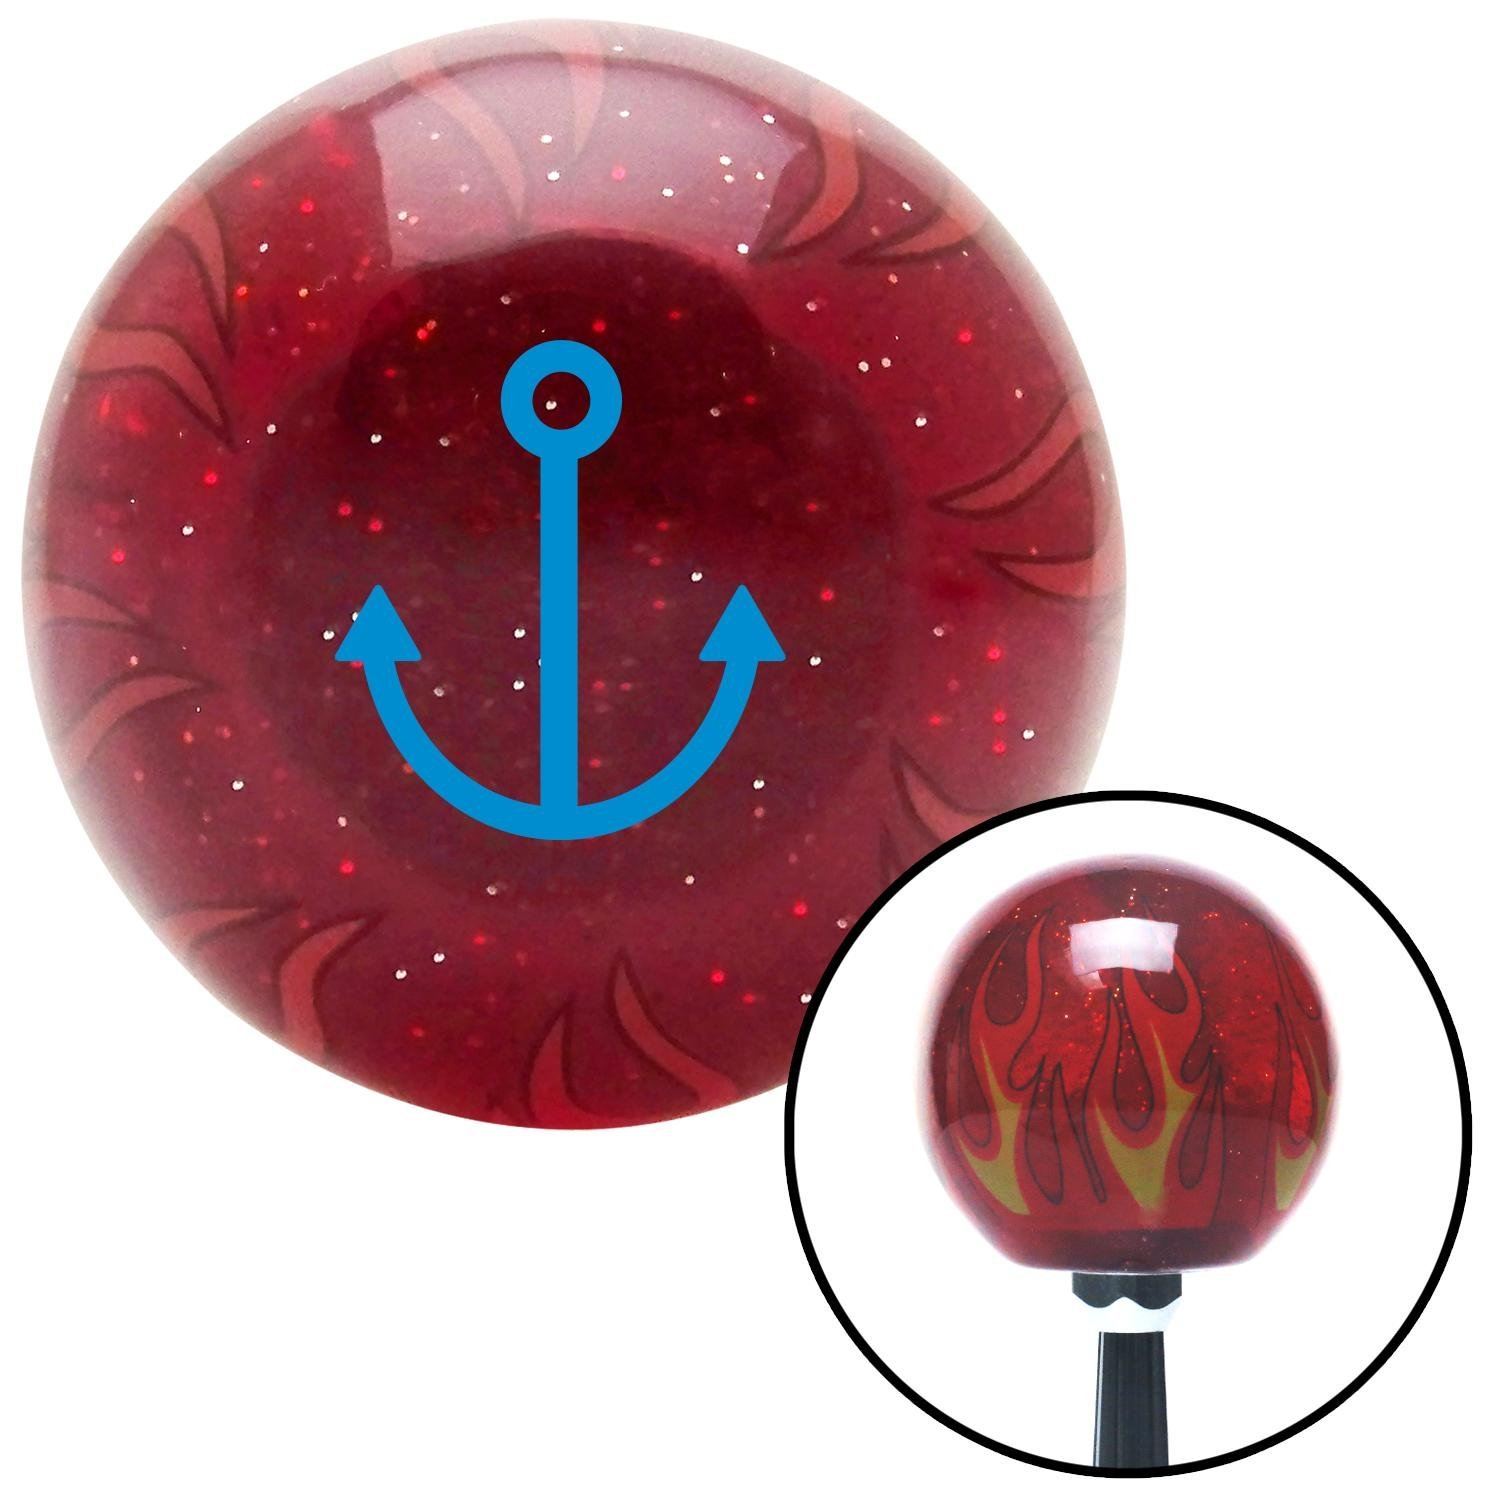 American Shifter 241009 Red Flame Metal Flake Shift Knob with M16 x 1.5 Insert Blue Marine Anchor